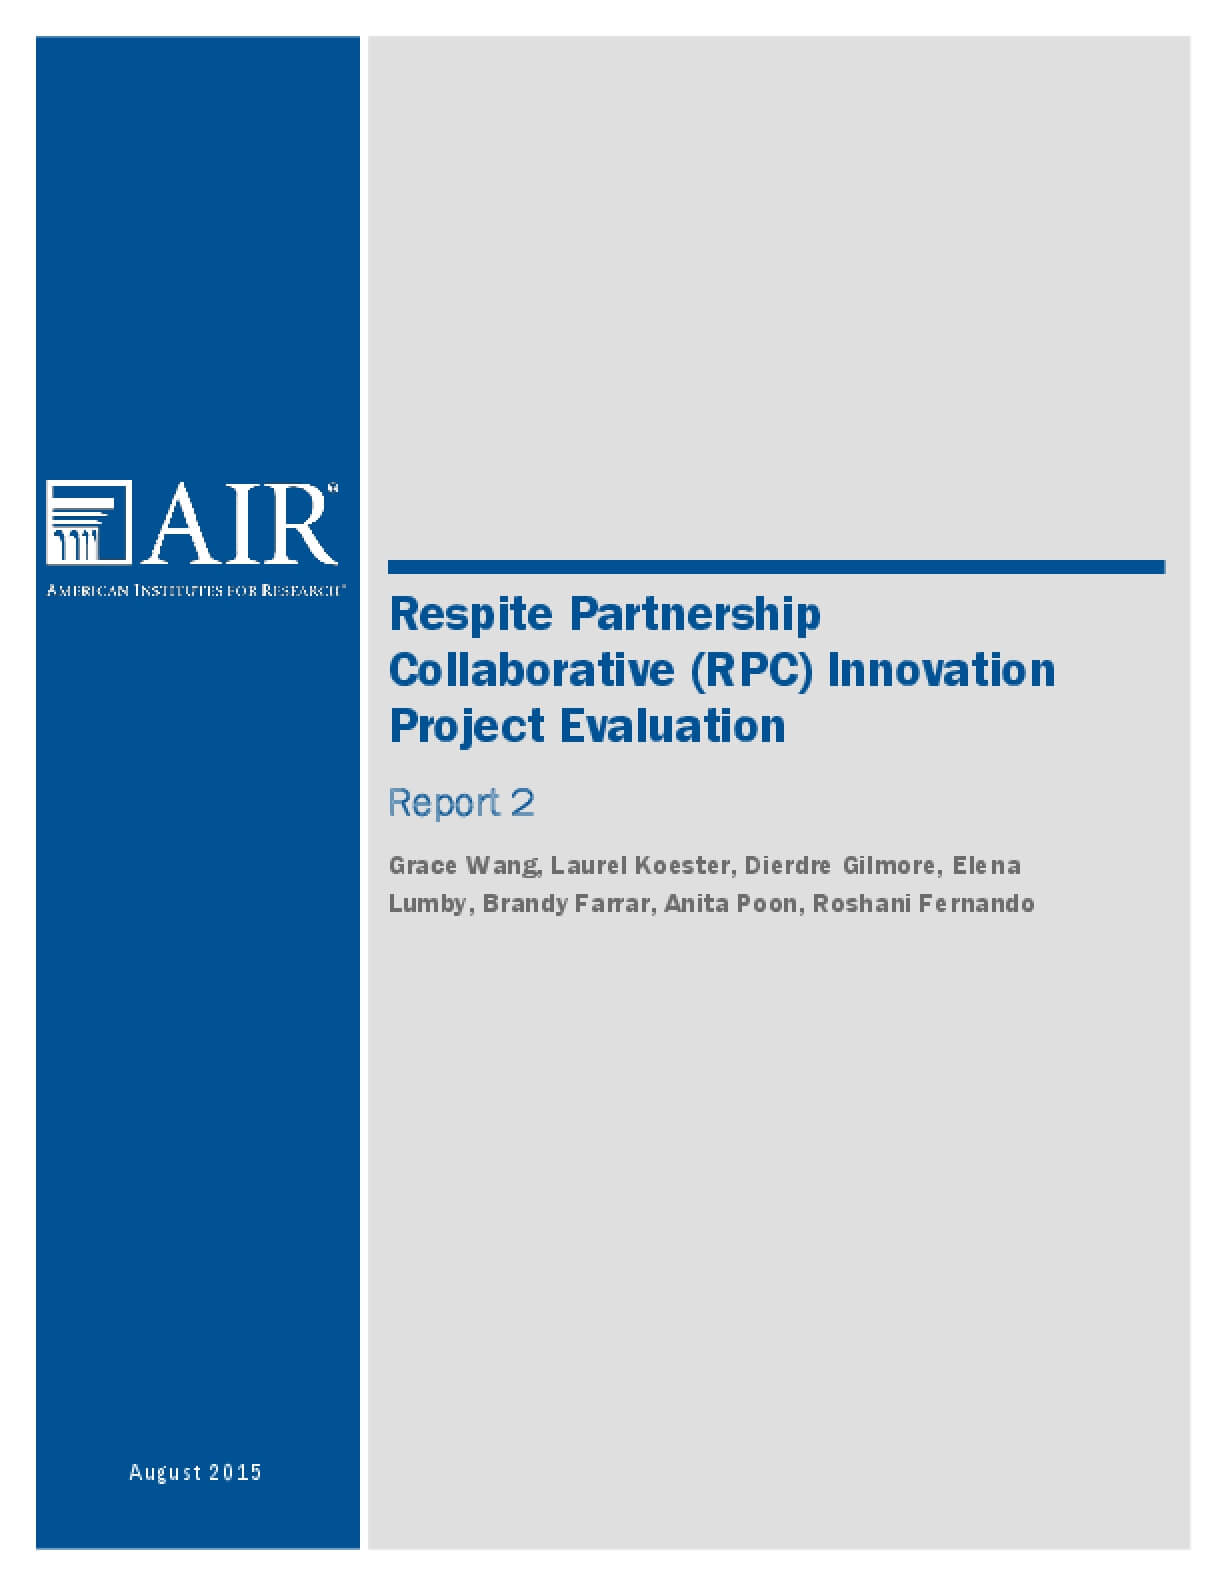 Respite Partnership Collaborative (RPC) Innovation Project Evaluation: Report 2